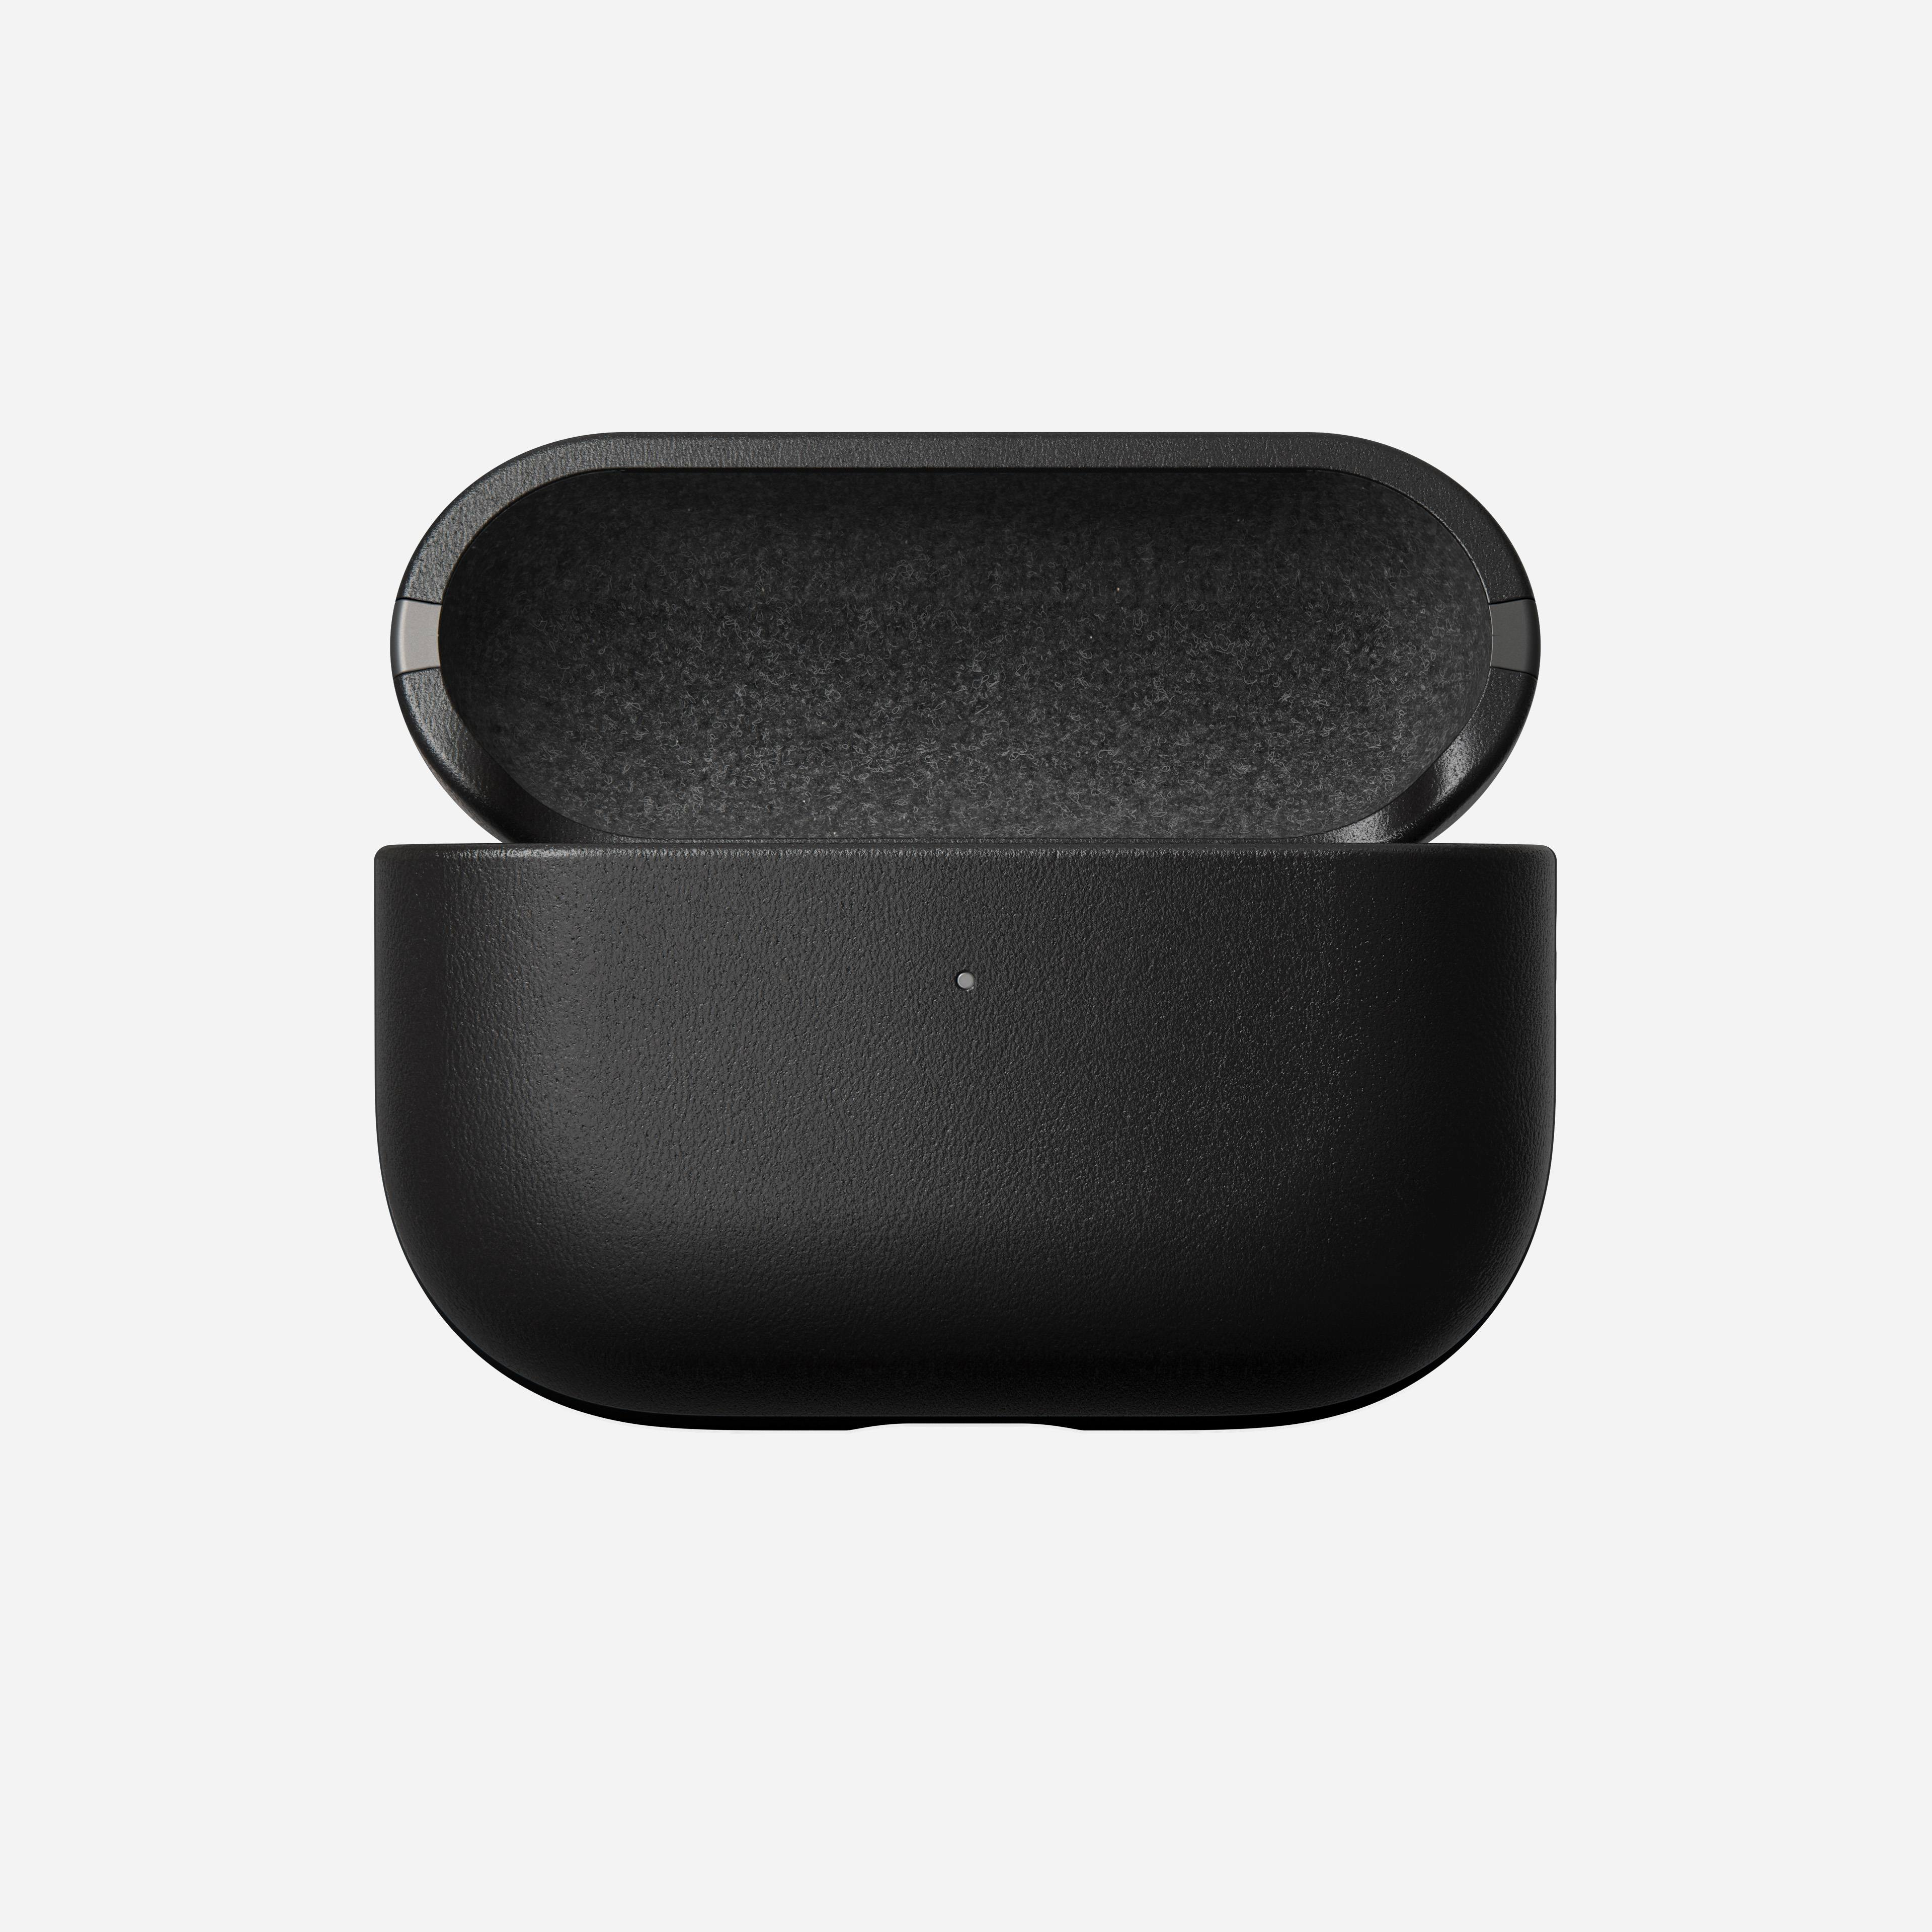 Rugged case airpods pro black leather